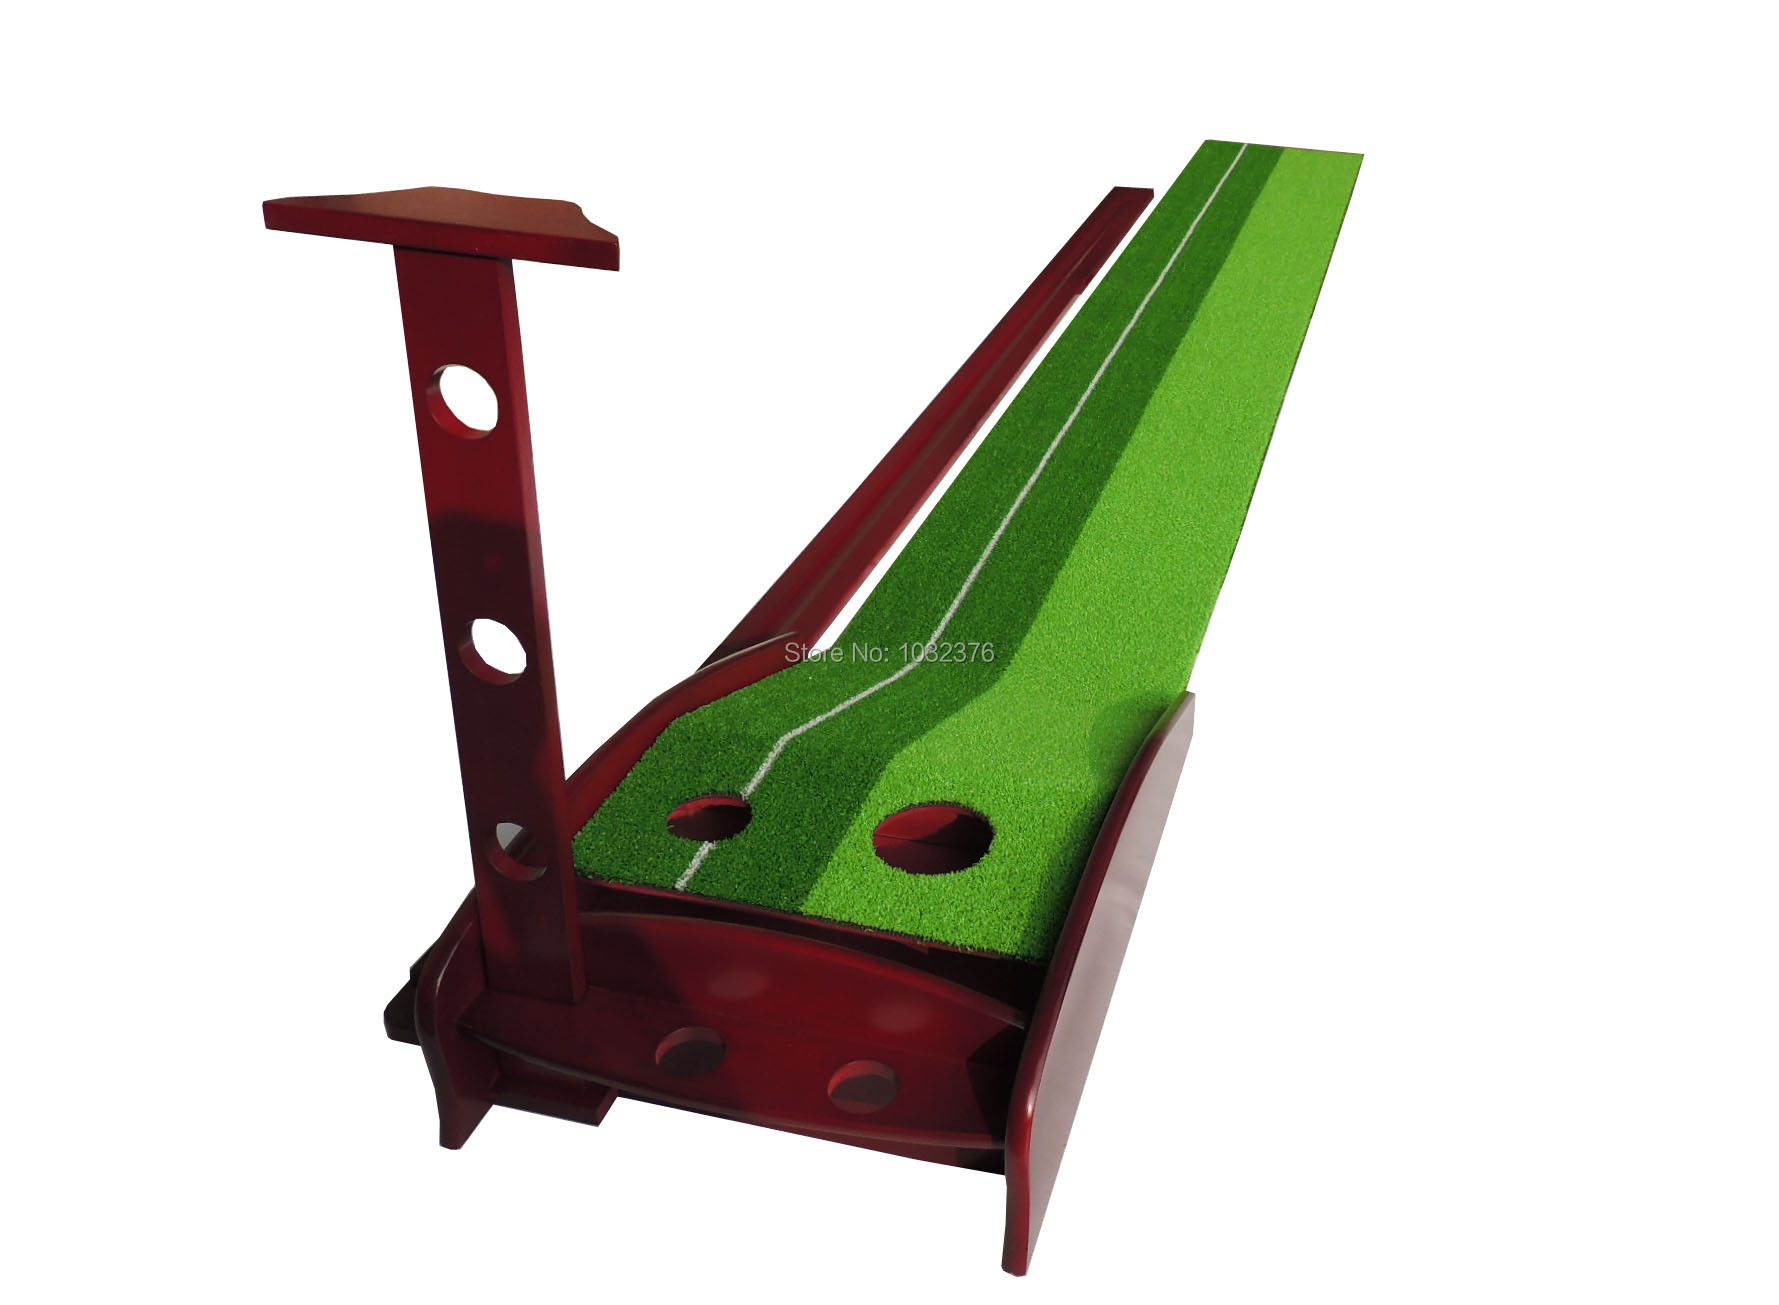 wooden golf trainer indoor golf putting practice golf putting mat mini golf putting trainer with automatic ball return indoor artificial grass carpet